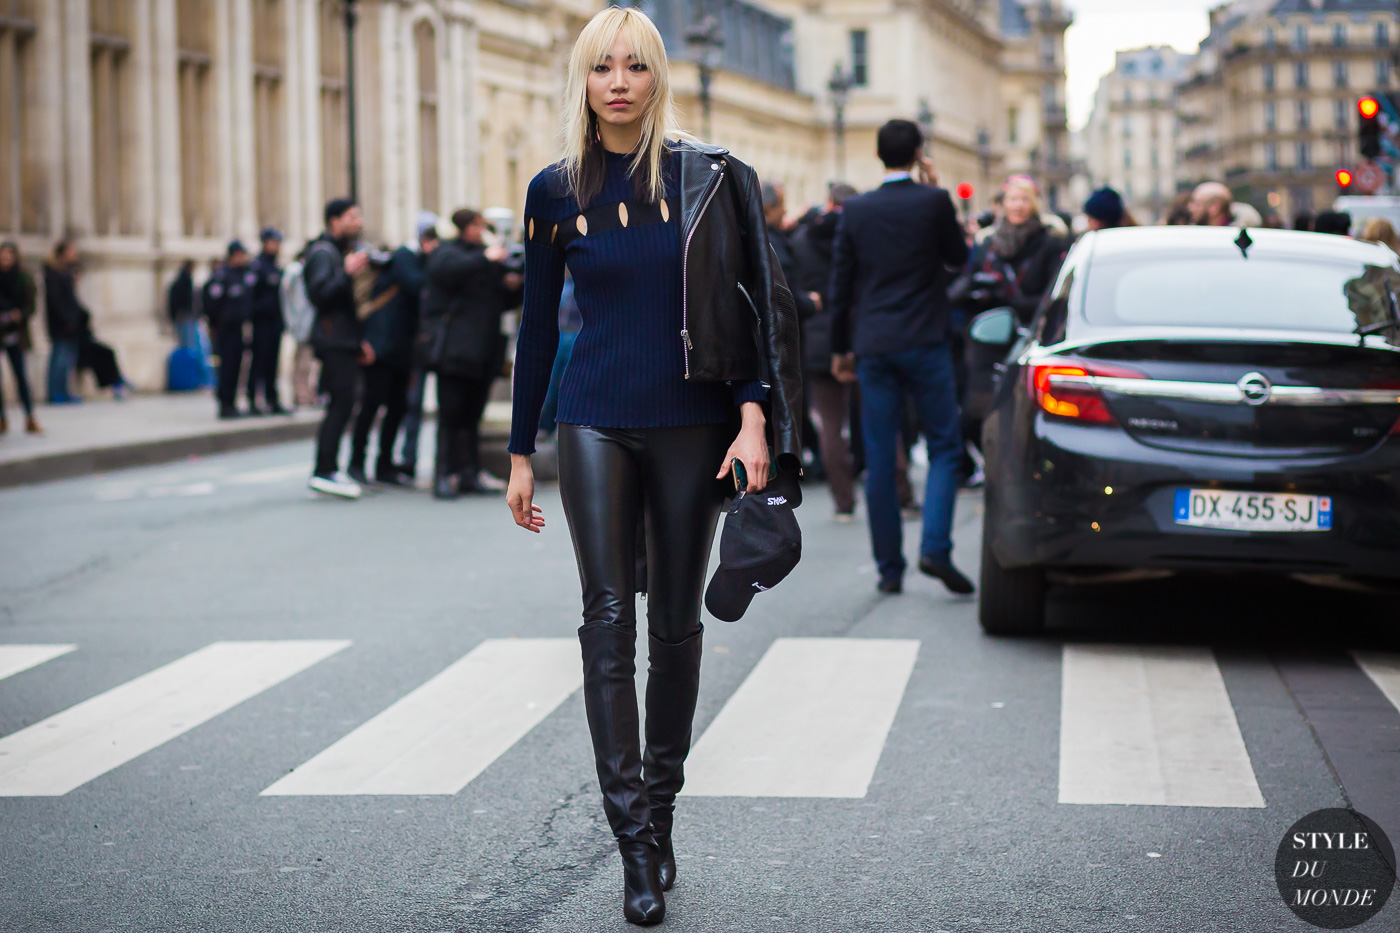 Soo Joo Park Street Style Street Fashion Streetsnaps by STYLEDUMONDE Street Style Fashion Photography